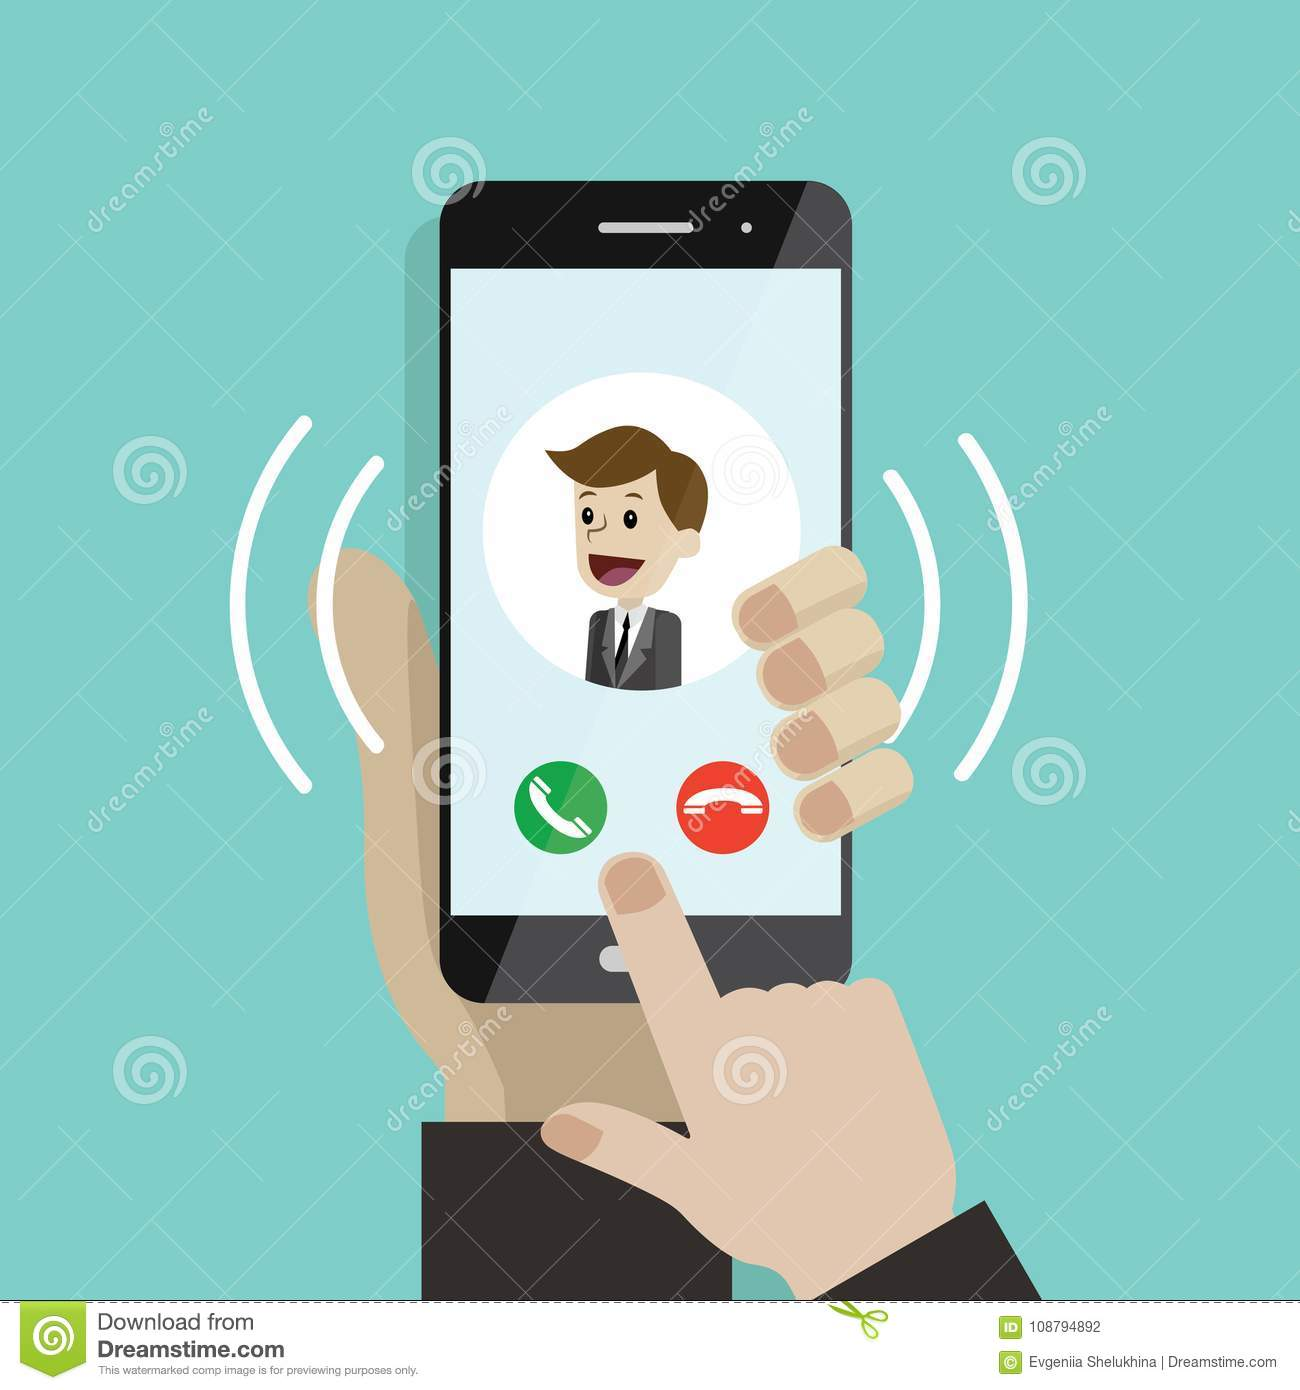 Incoming Call  Human Hand Holding Cellphone  Smartphone With